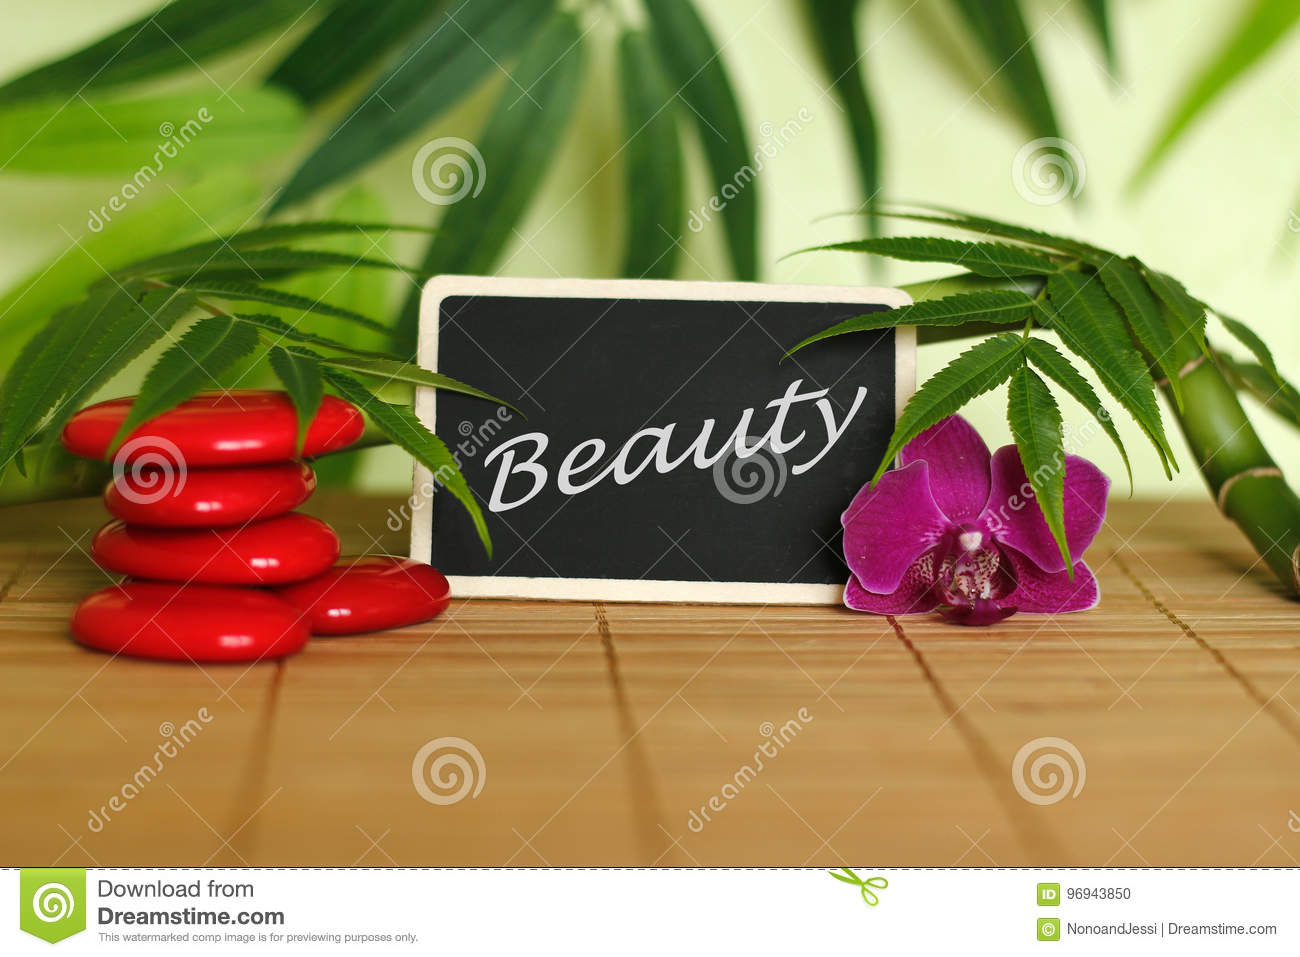 Red pebbles arranged in Zen lifestyle with an orchid, a lighted candle, a bamboo branch and foliage with the message beauty on the